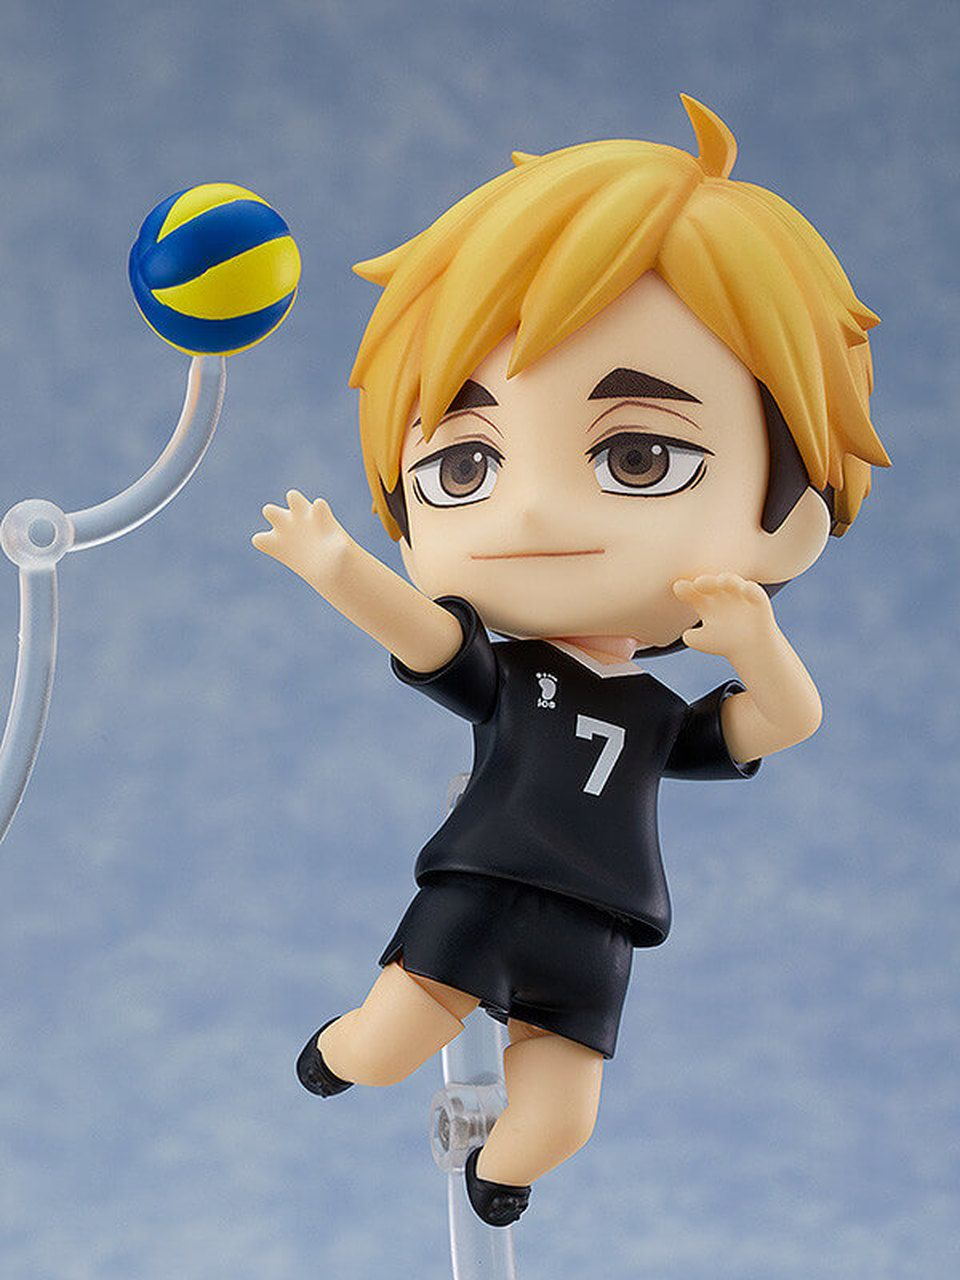 Orange Rouge Atsumu Miya Haikyu To The Top Nendoroid 1403 In 2020 Nendoroid Haikyuu Haikyu